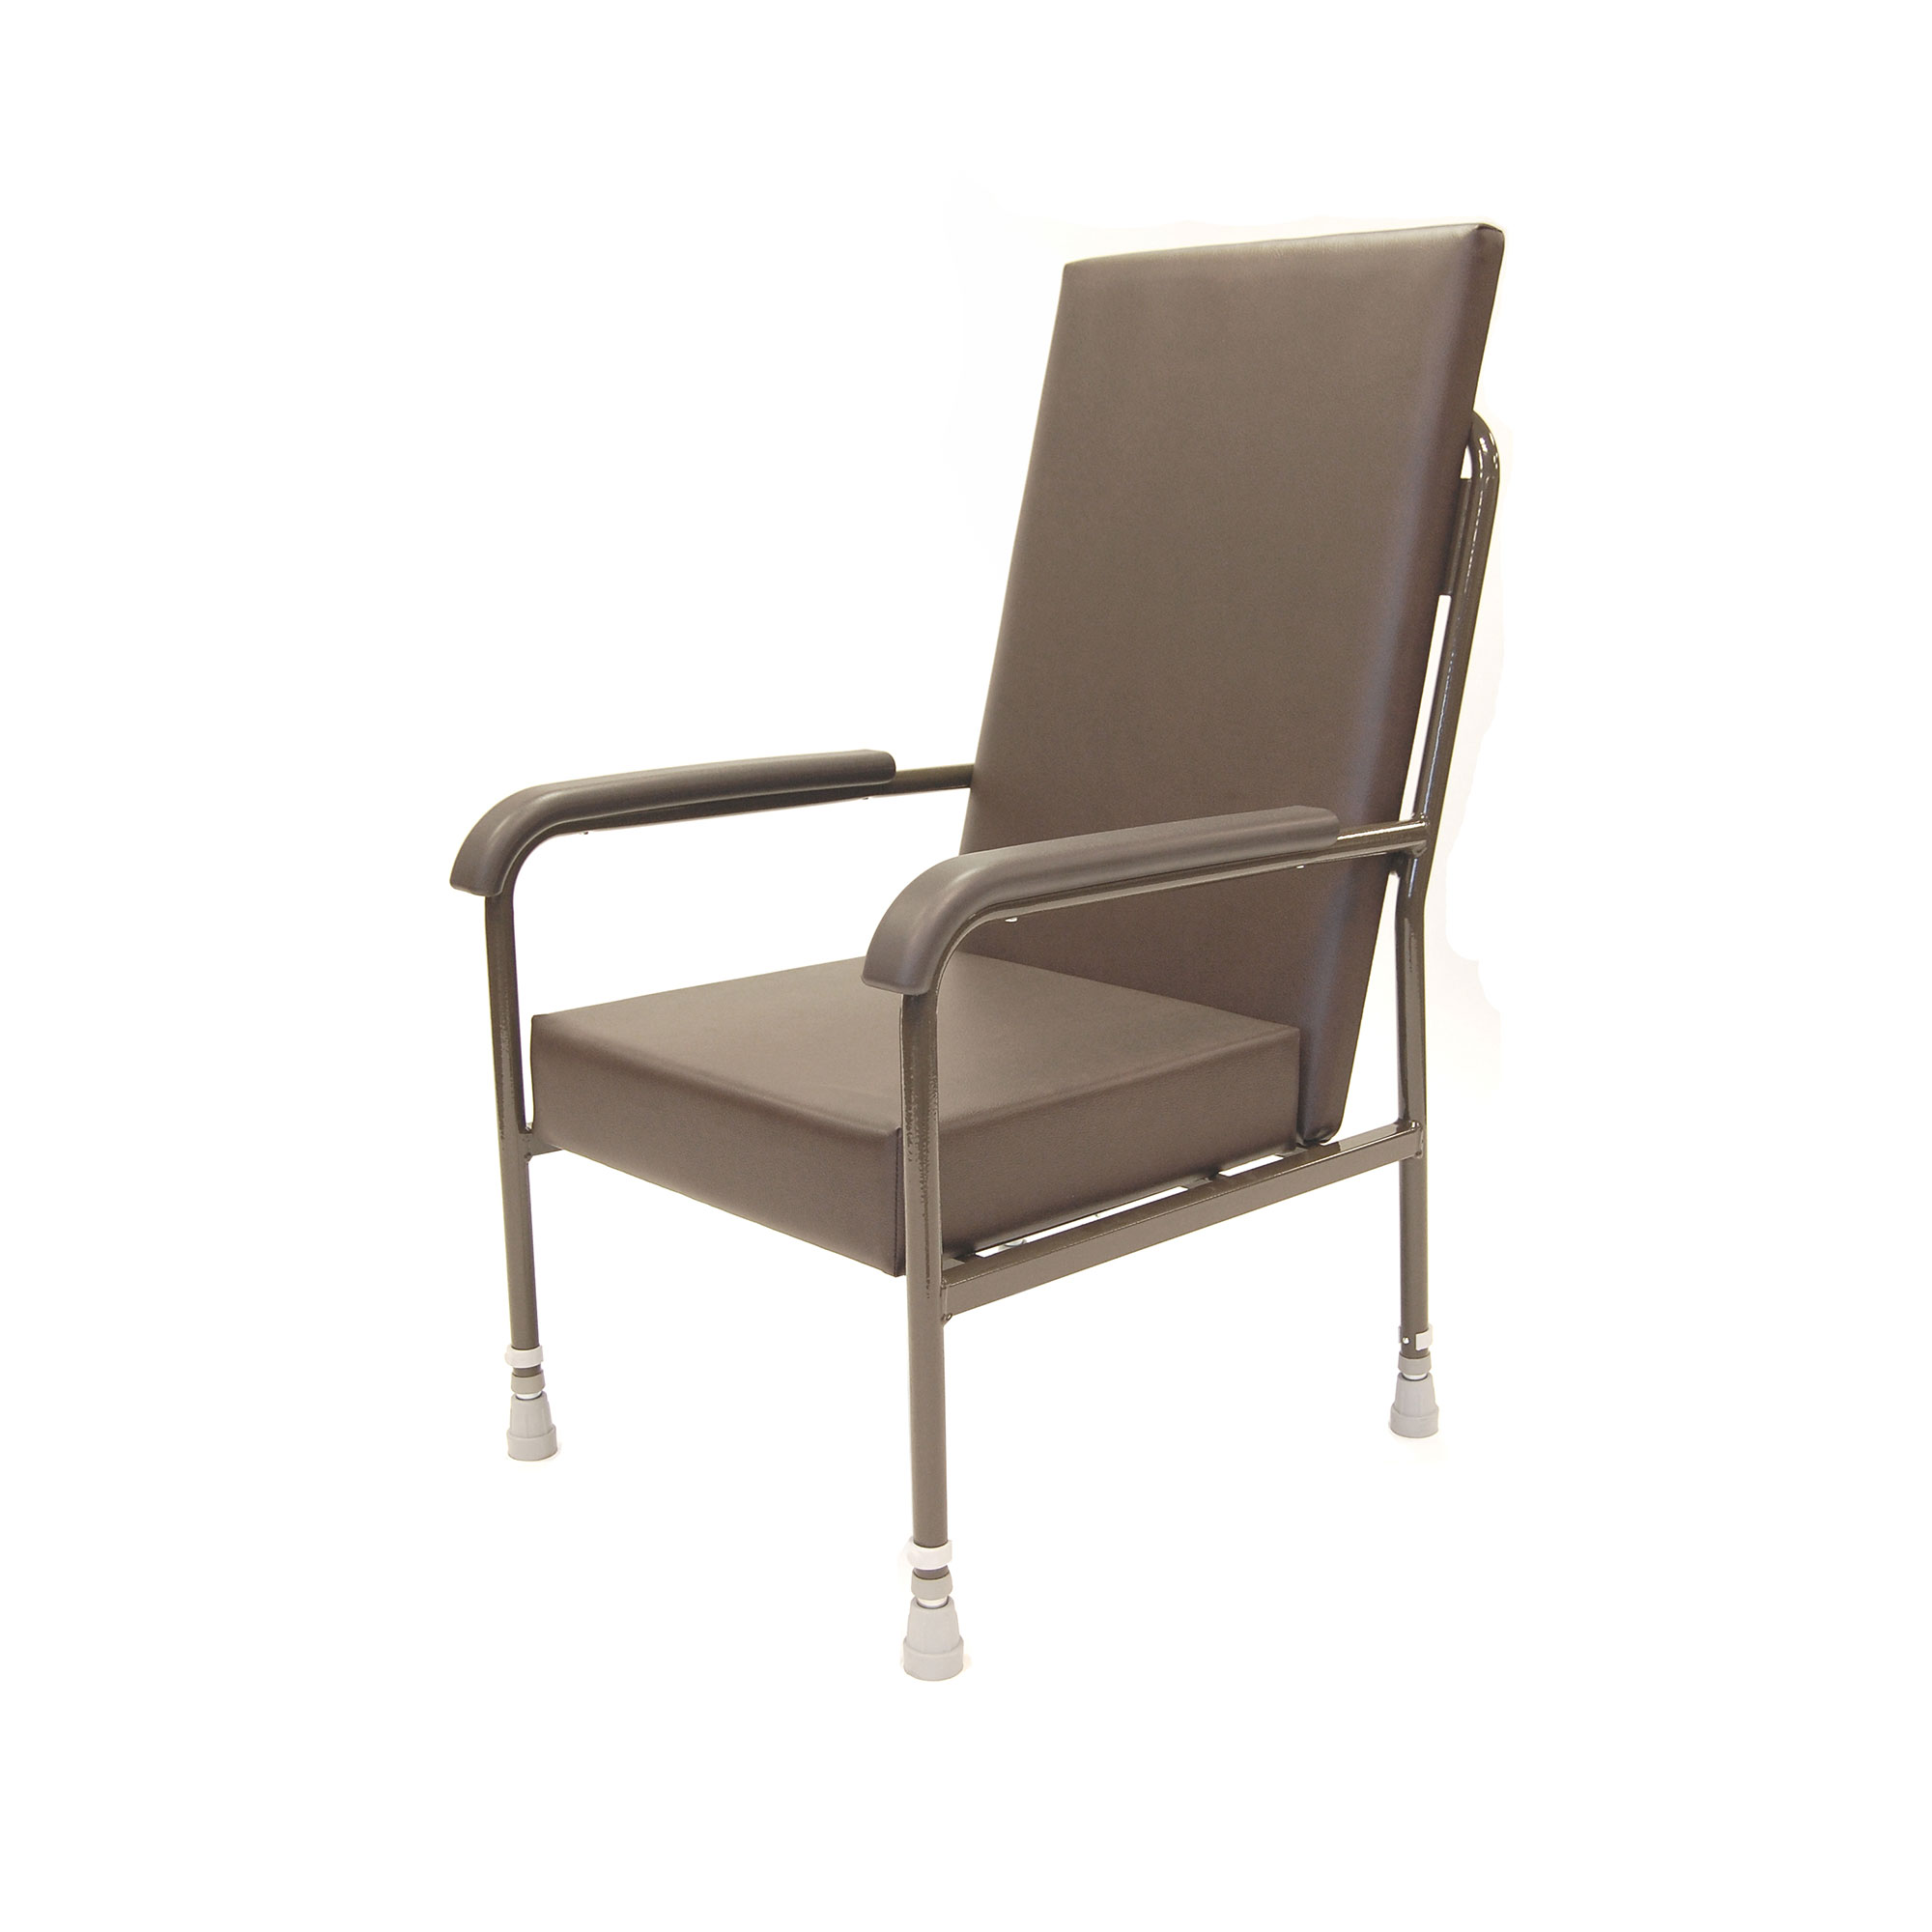 nursing chairs uk stretch dining chair covers australia 5718 high back vinyl upholstery without wings